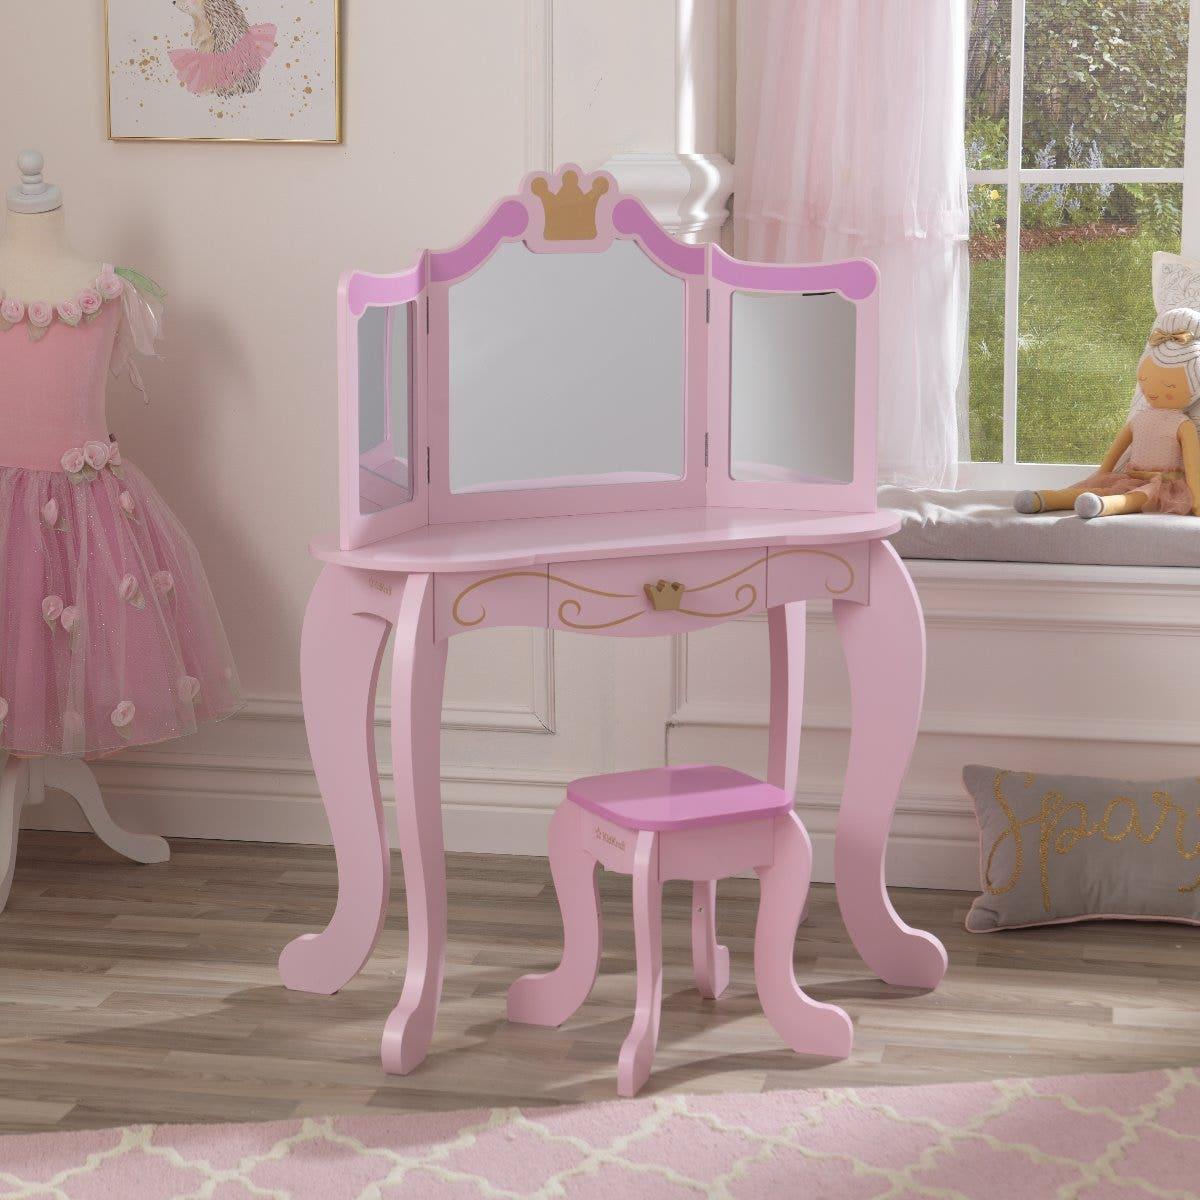 Companion piece to KidKraft's Princess furniture collection